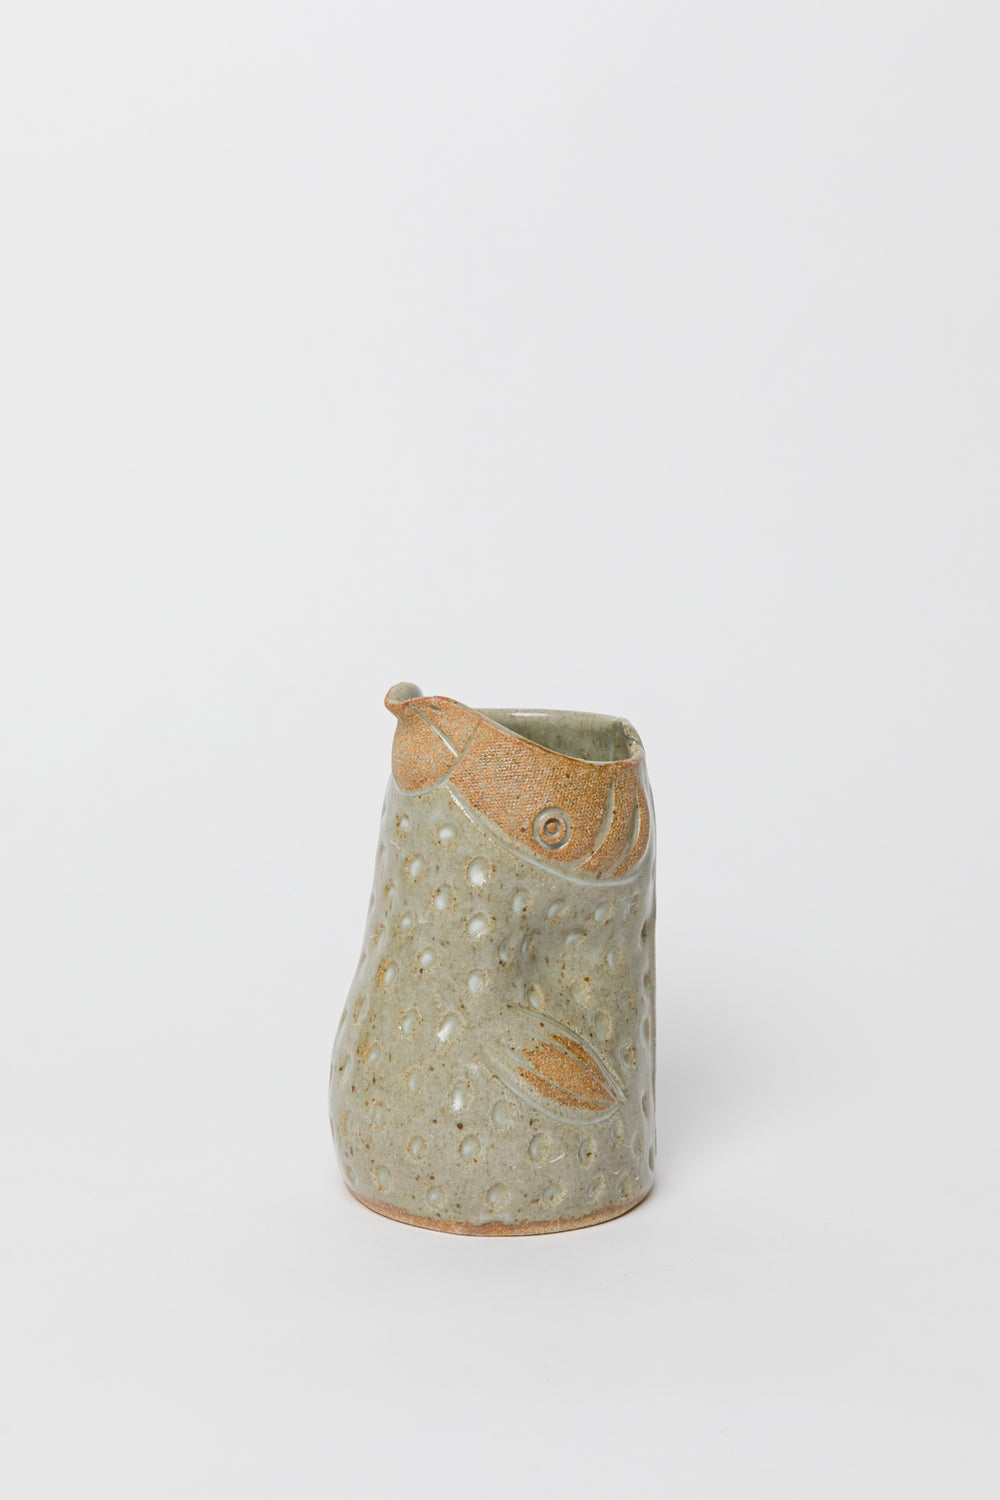 Image of Medium Small Winged Dotted Green Handleless Bird Pitcher